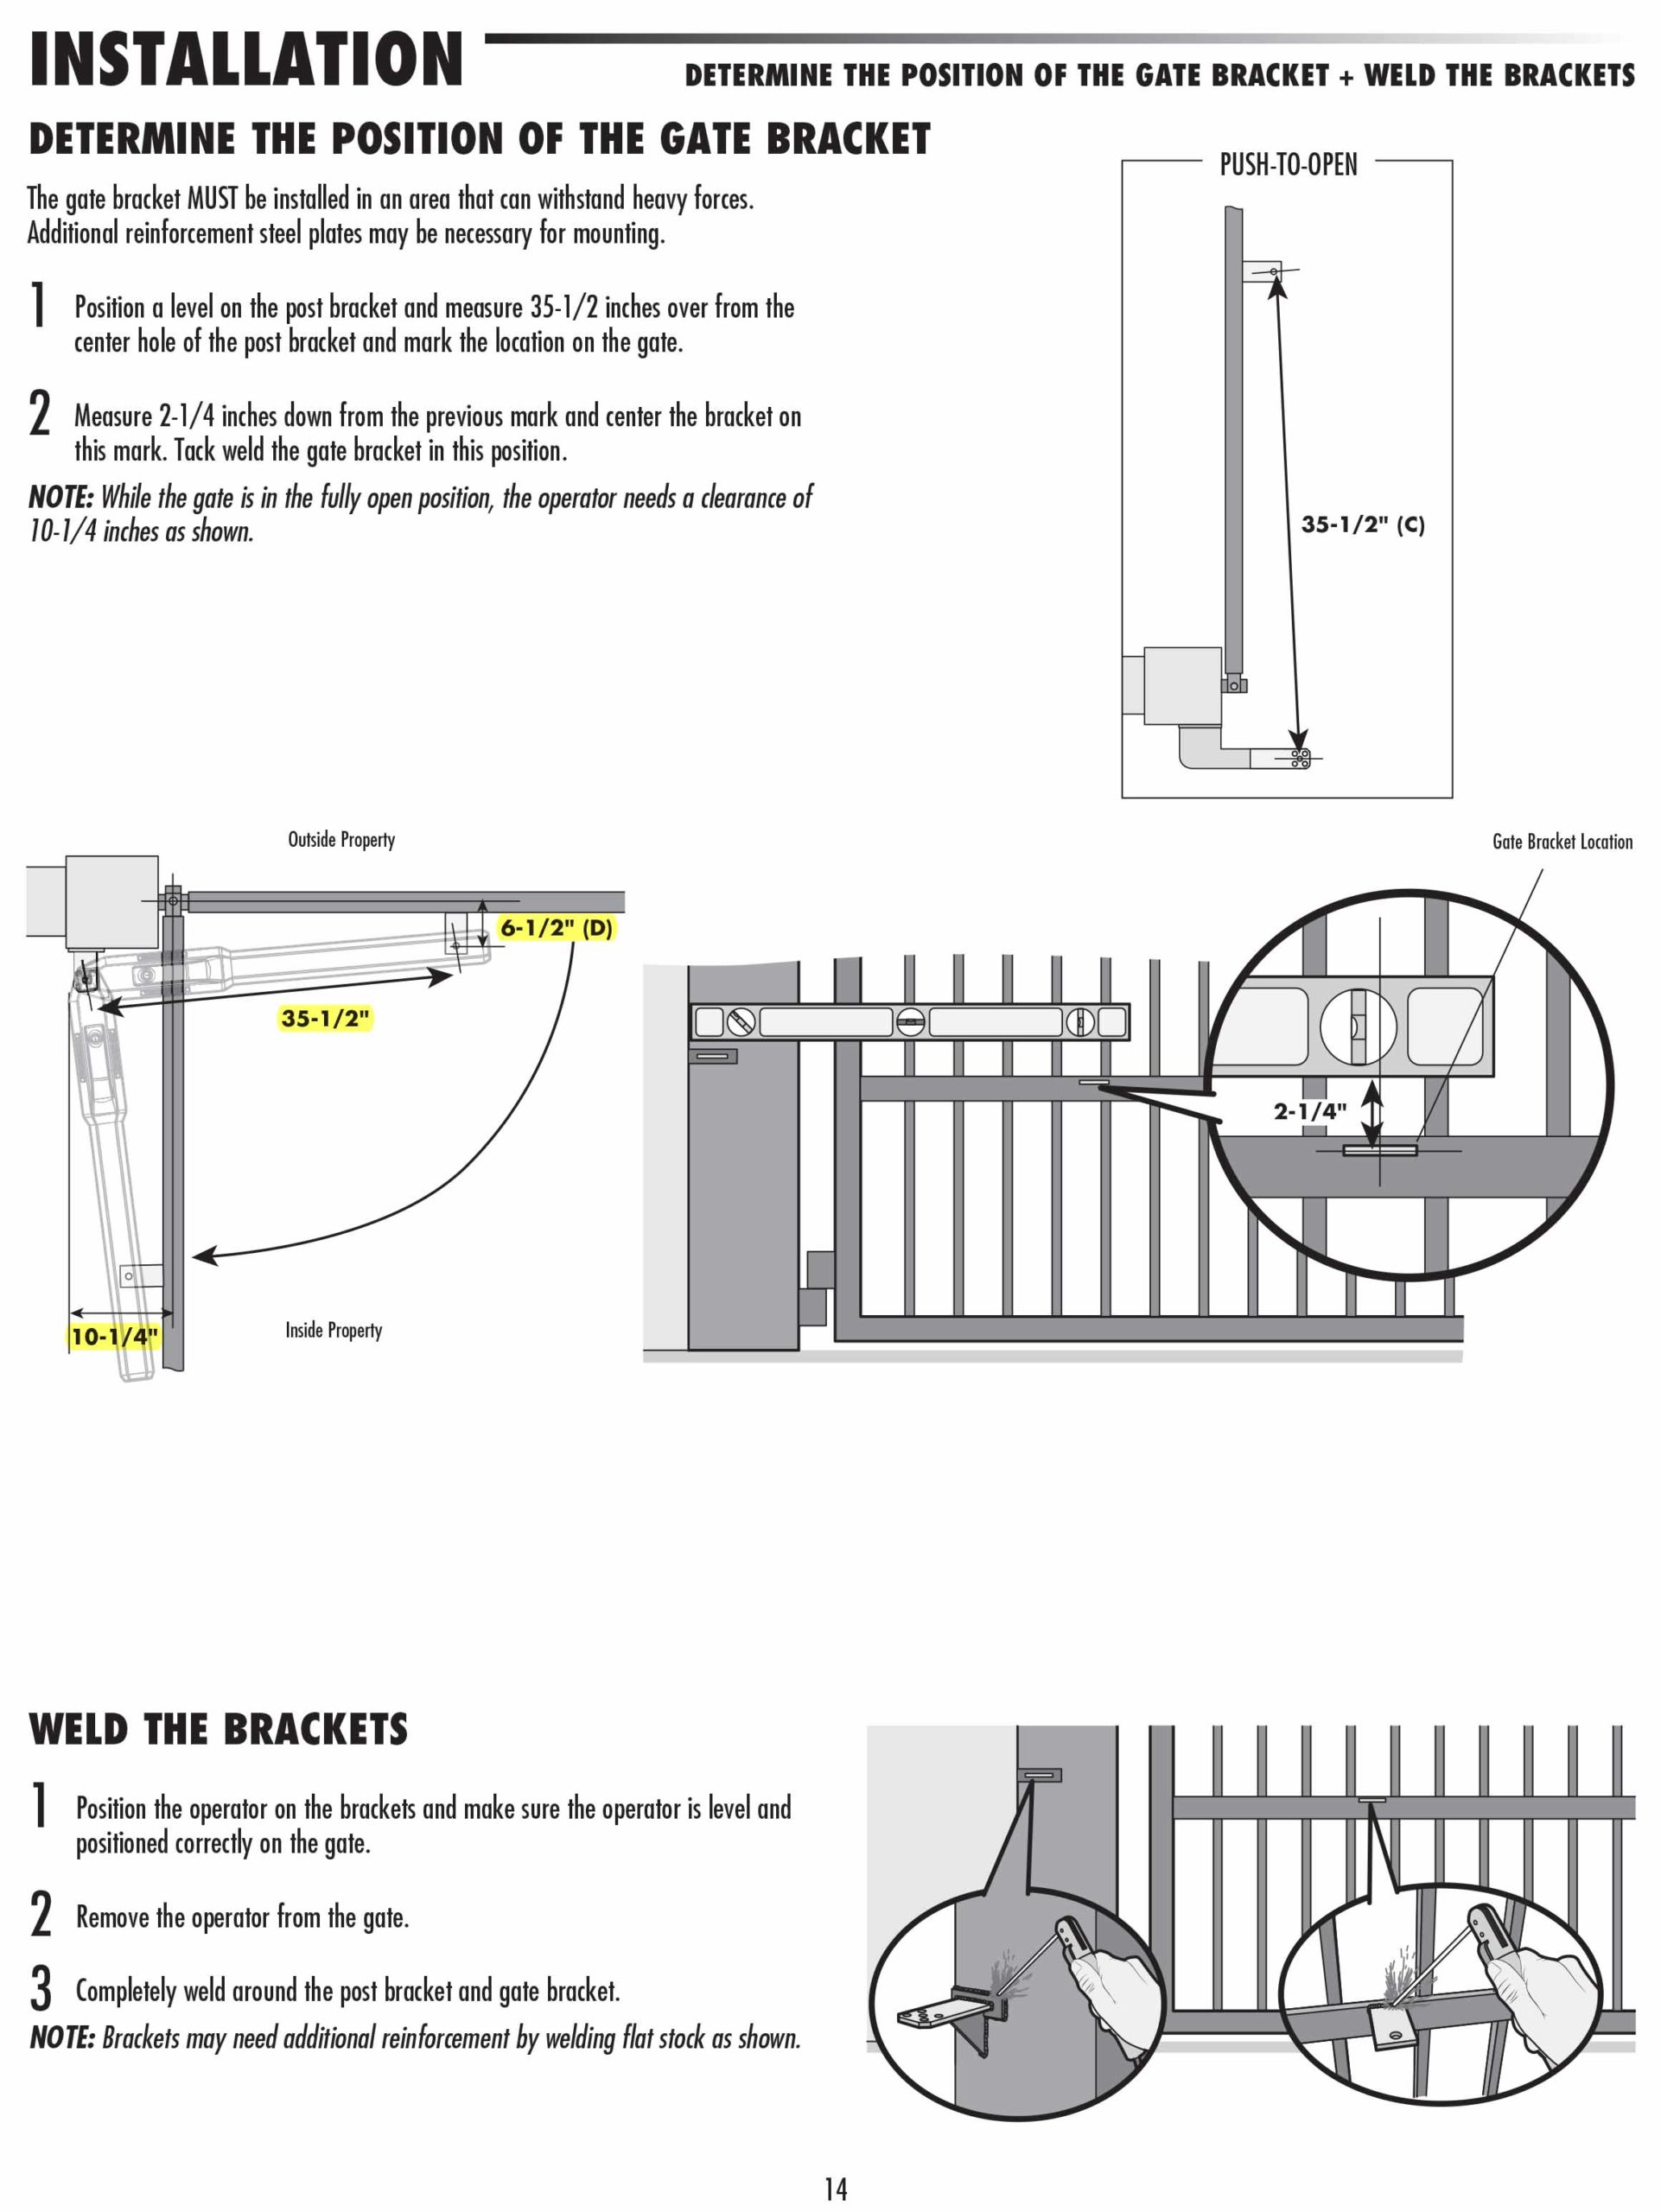 A how to guide for the installation of a swinging driveway gate bracket with a welder.